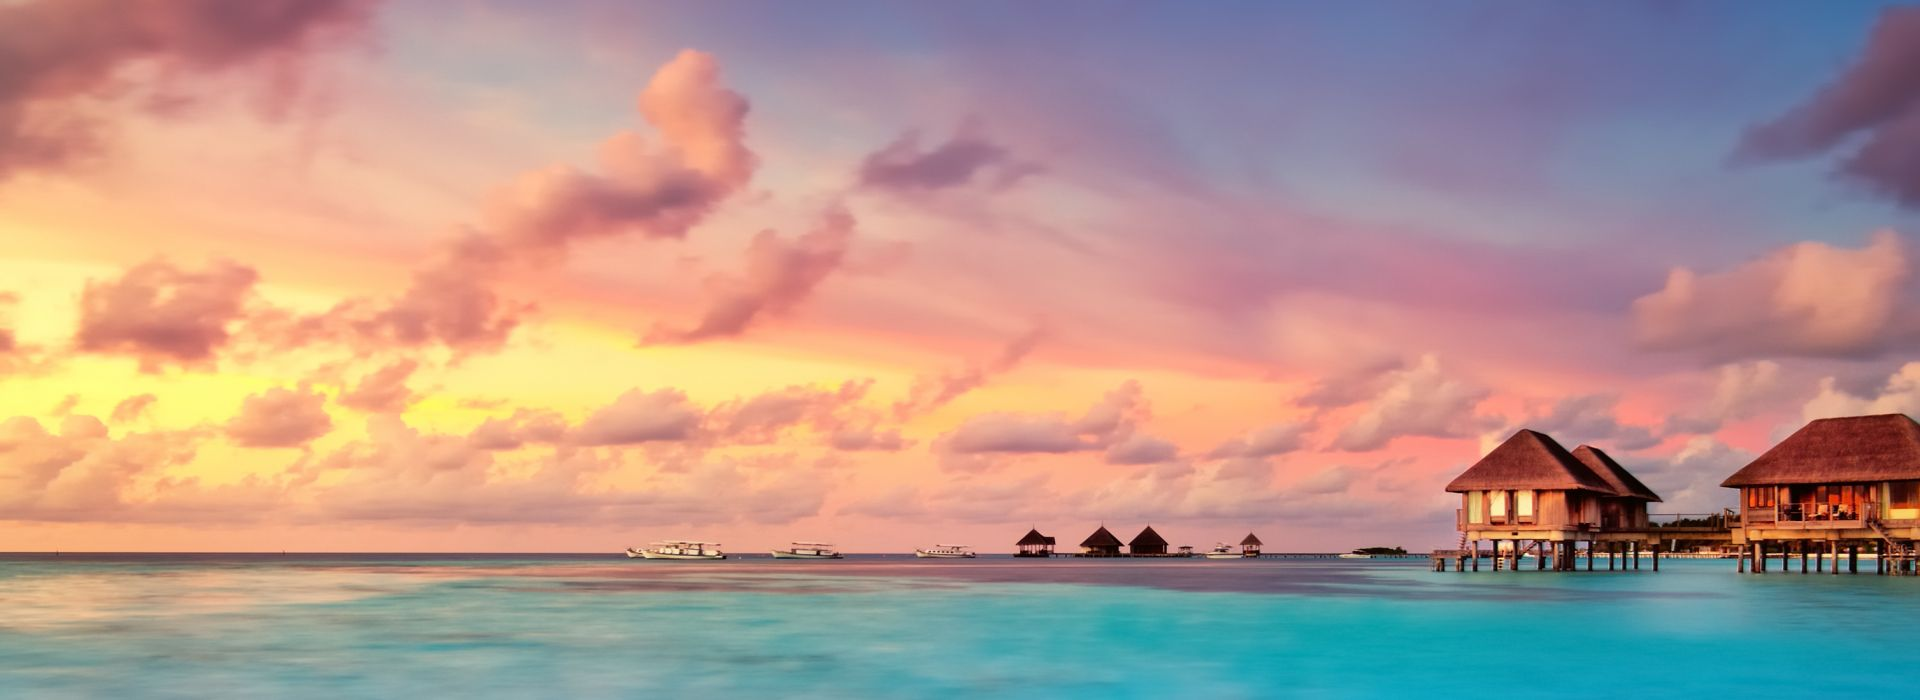 Bahrain Strand 10 Best Maldives Tours & Trips 2019/2020 (with 7 Reviews